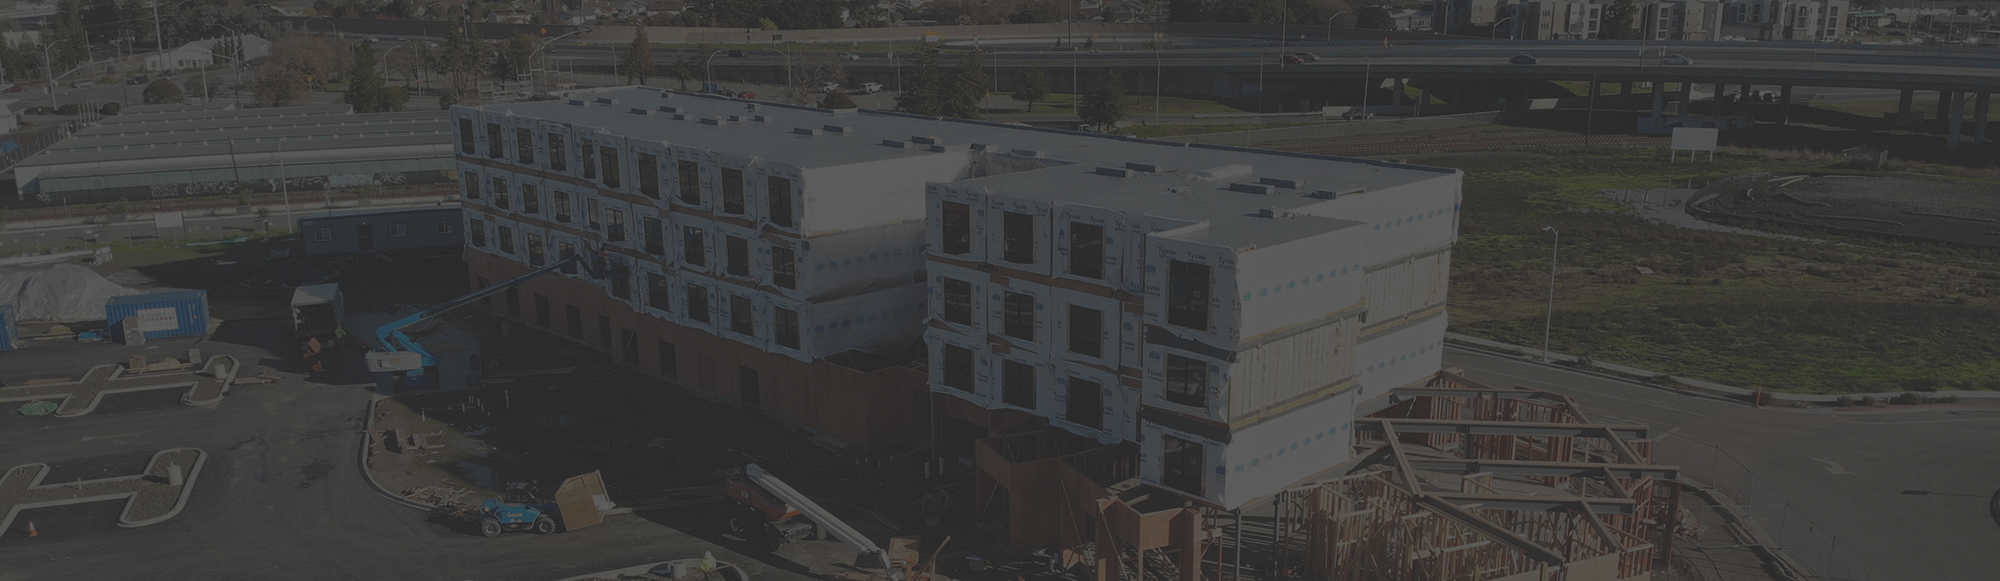 Accuset Construction aerial shot of multiple modular building units for a hotel